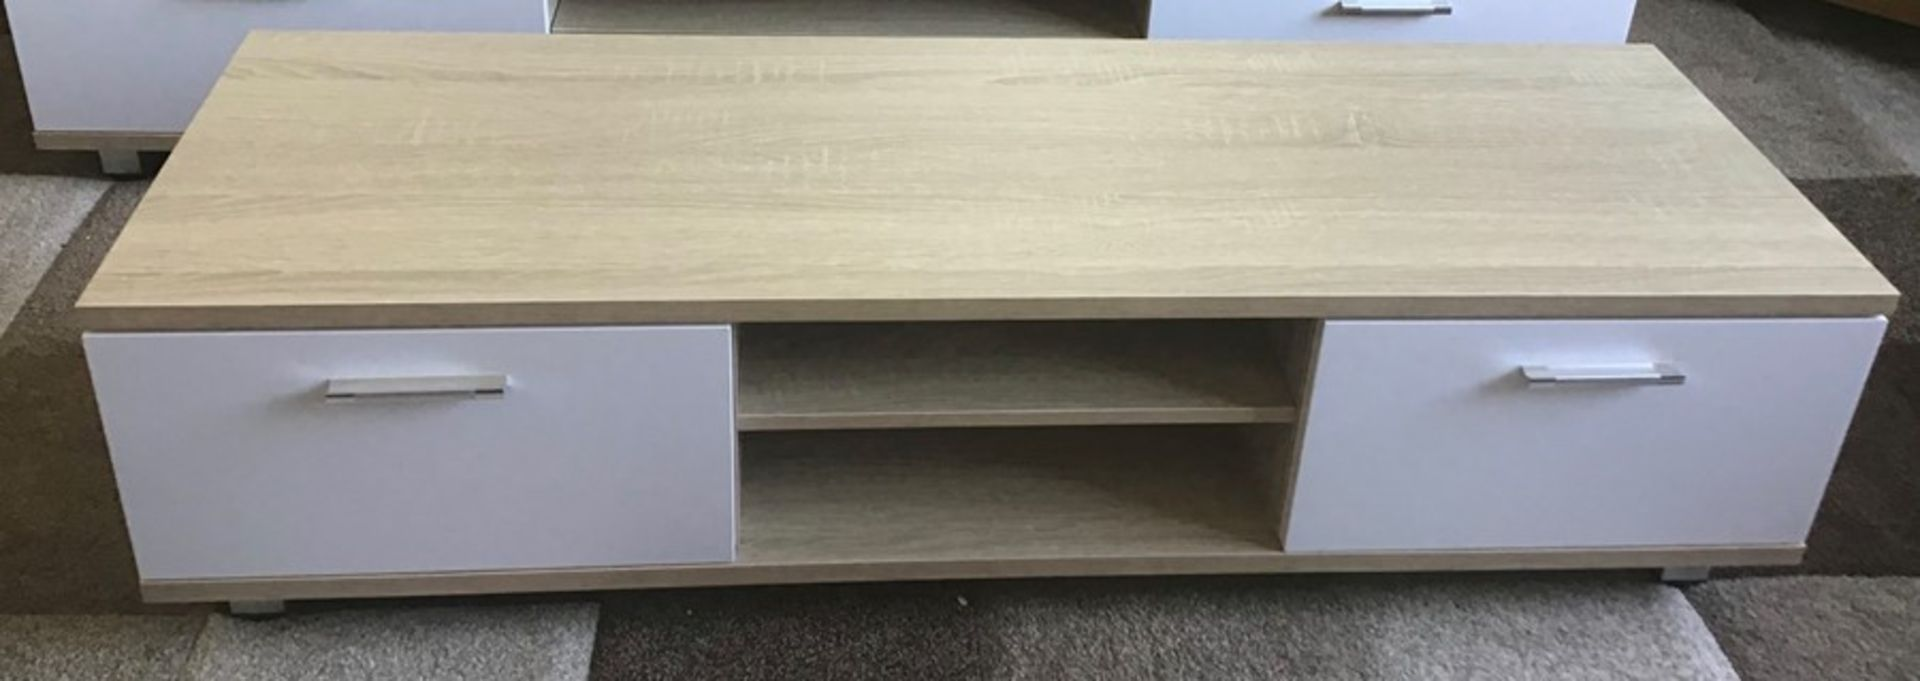 Oak and white 168cm TV stand, brand new, flat packed and boxed. RRP Circa £100.00 | 1x Box - Image 3 of 3